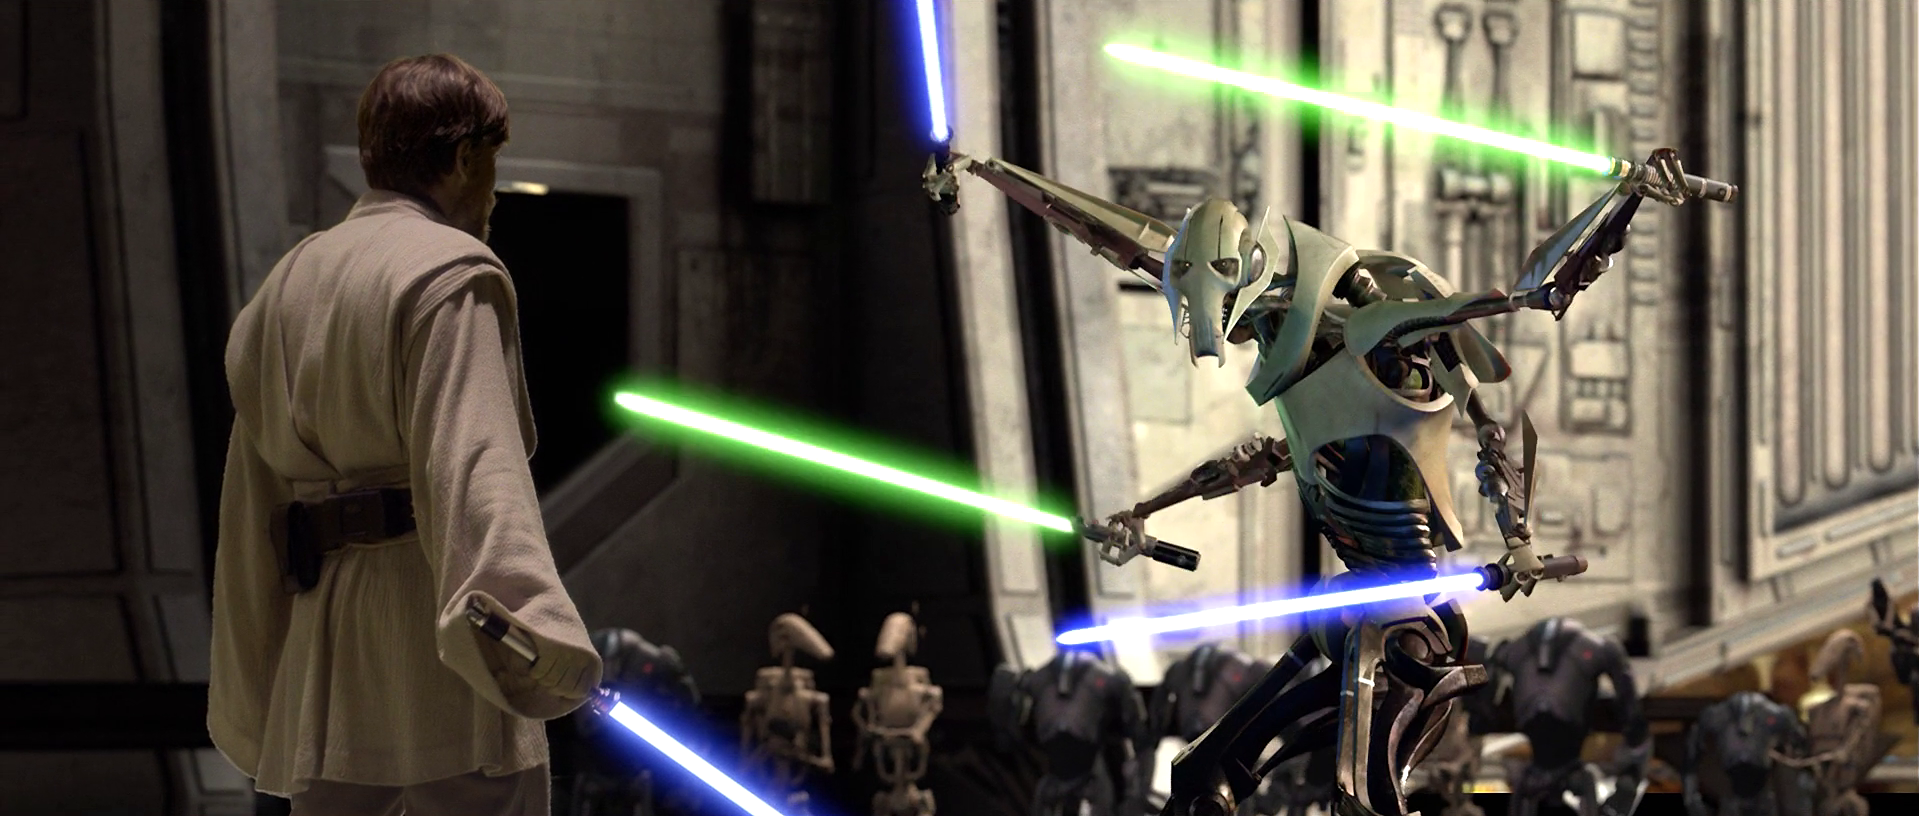 STAR WARS rots GENERAL GRIEVOUS revenge of the sith EP3